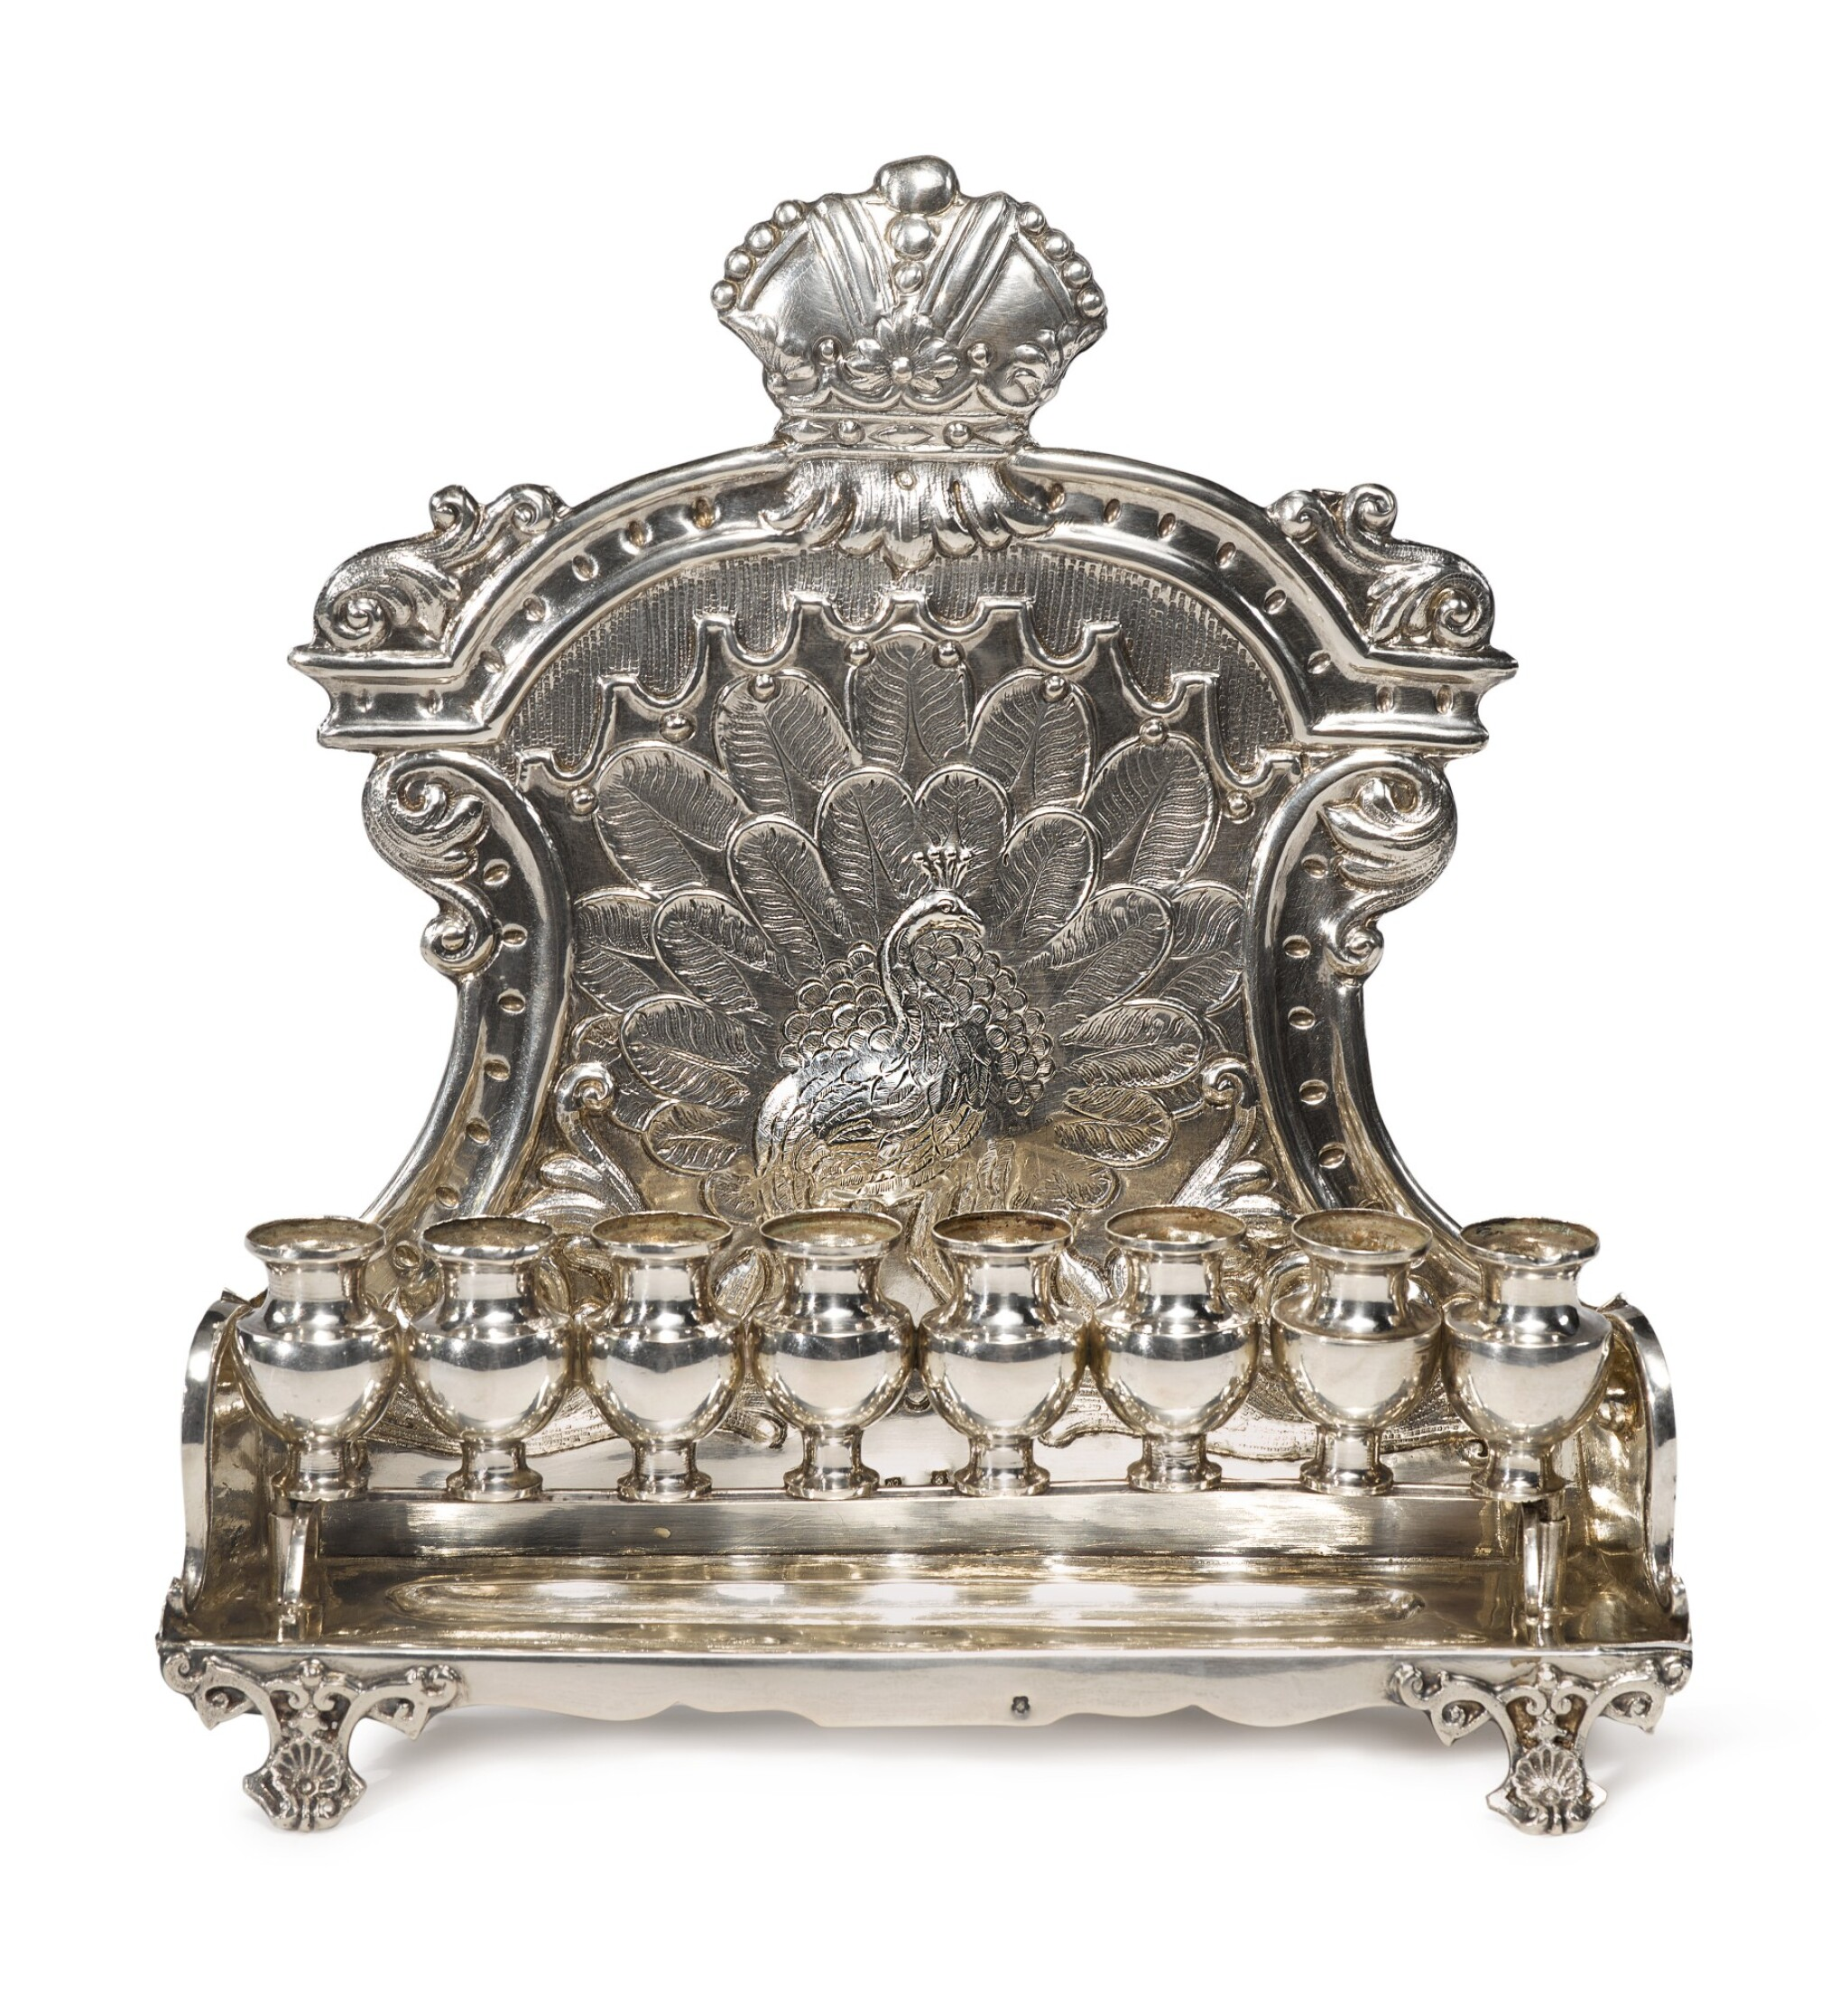 View full screen - View 1 of Lot 125. AN AUSTRIAN SILVER HANUKAH LAMP, MAKER'S MARK CW PROBABLY FOR CARL WARMUTH JR., VIENNA, EARLY 20TH CENTURY.